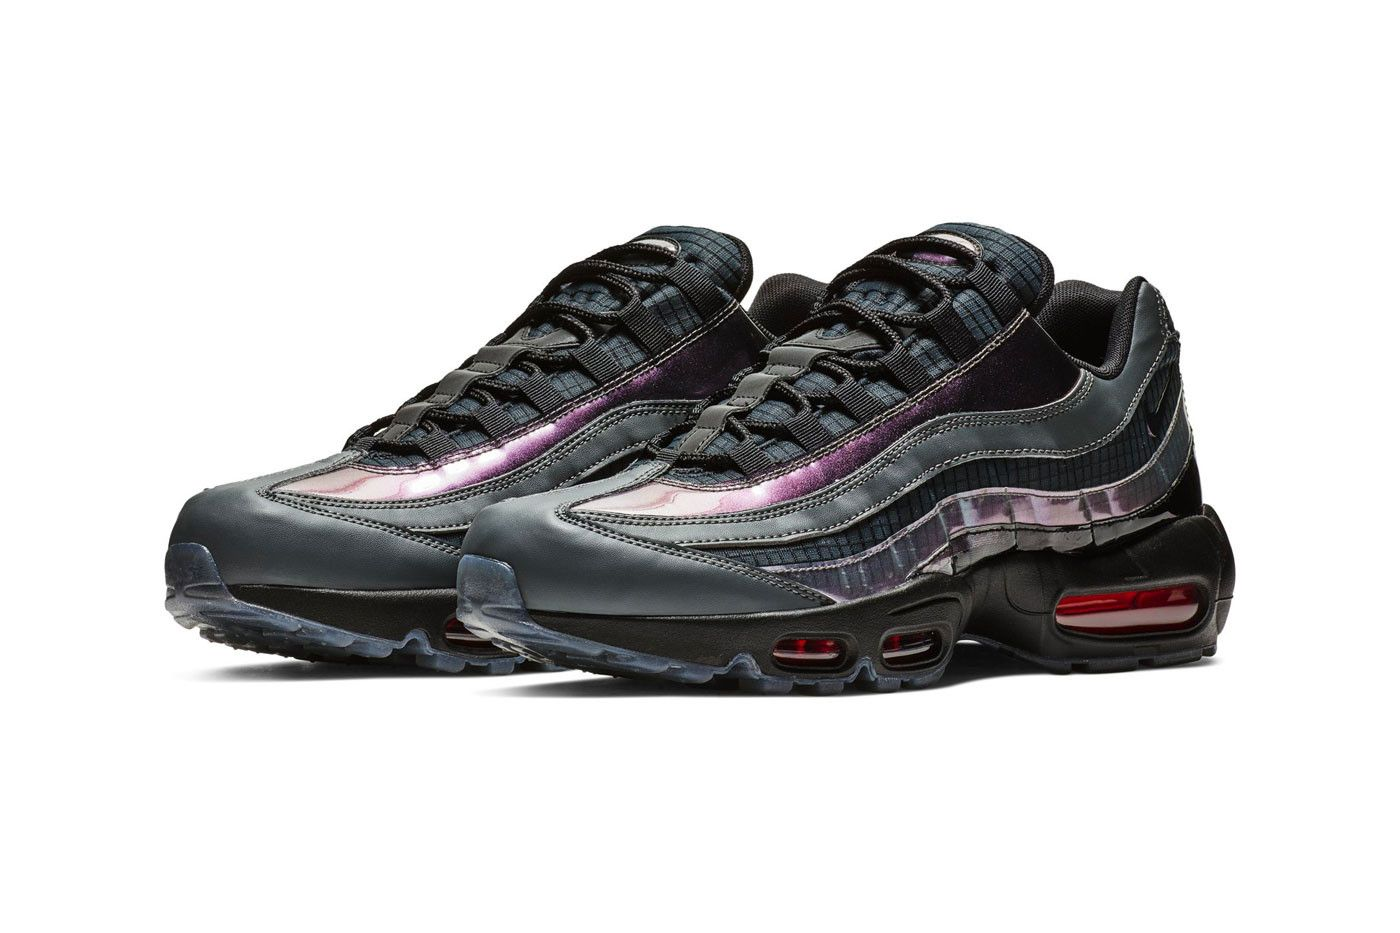 The Nike Air Max 95 Ember Glow Features A Subtle Iridescent Shine Nike Air Max Air Max 95 Nike Air Max 95